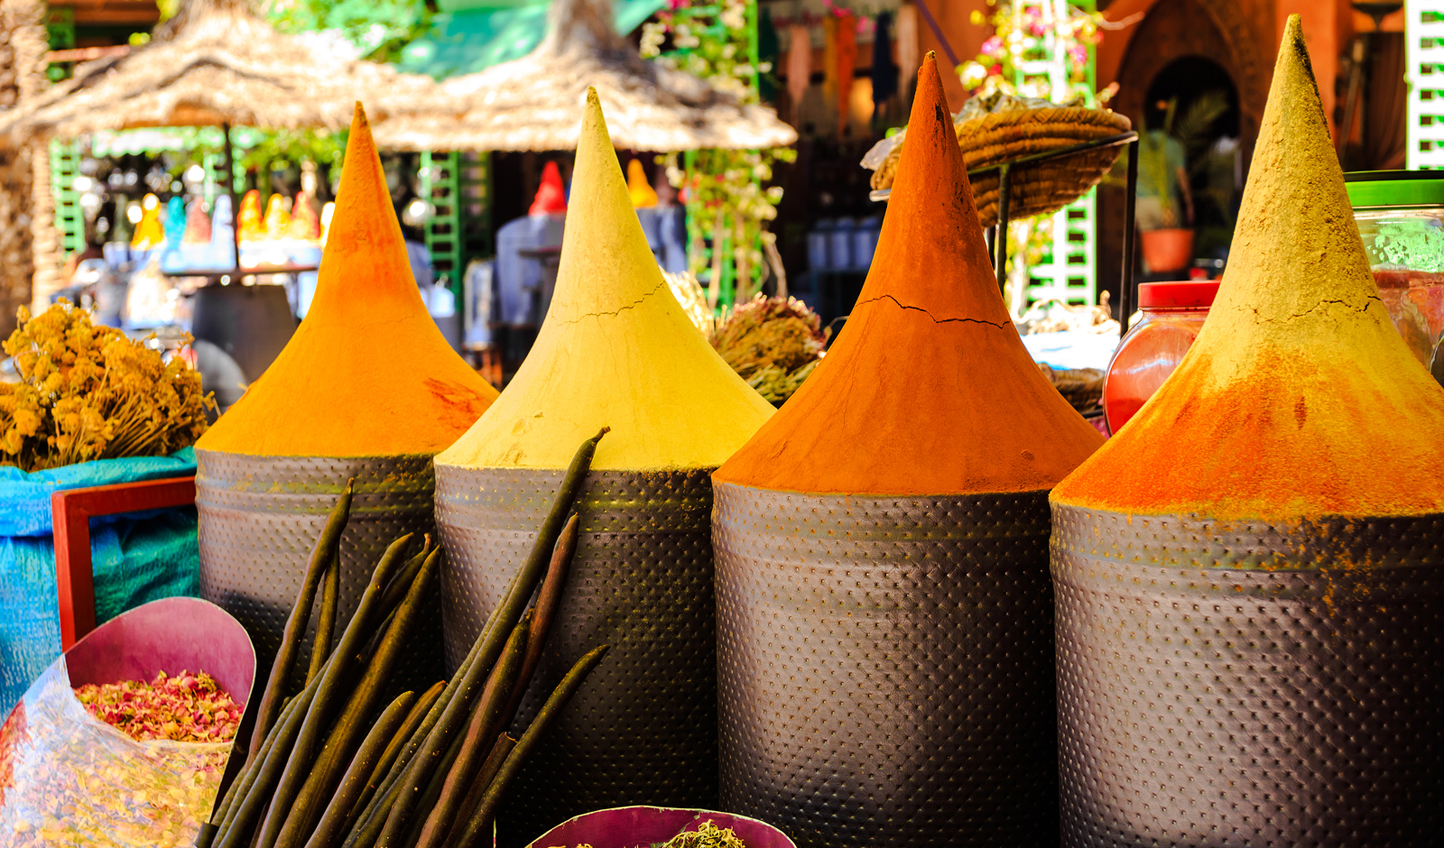 Explore the souks and breathe in the heady scent of spices